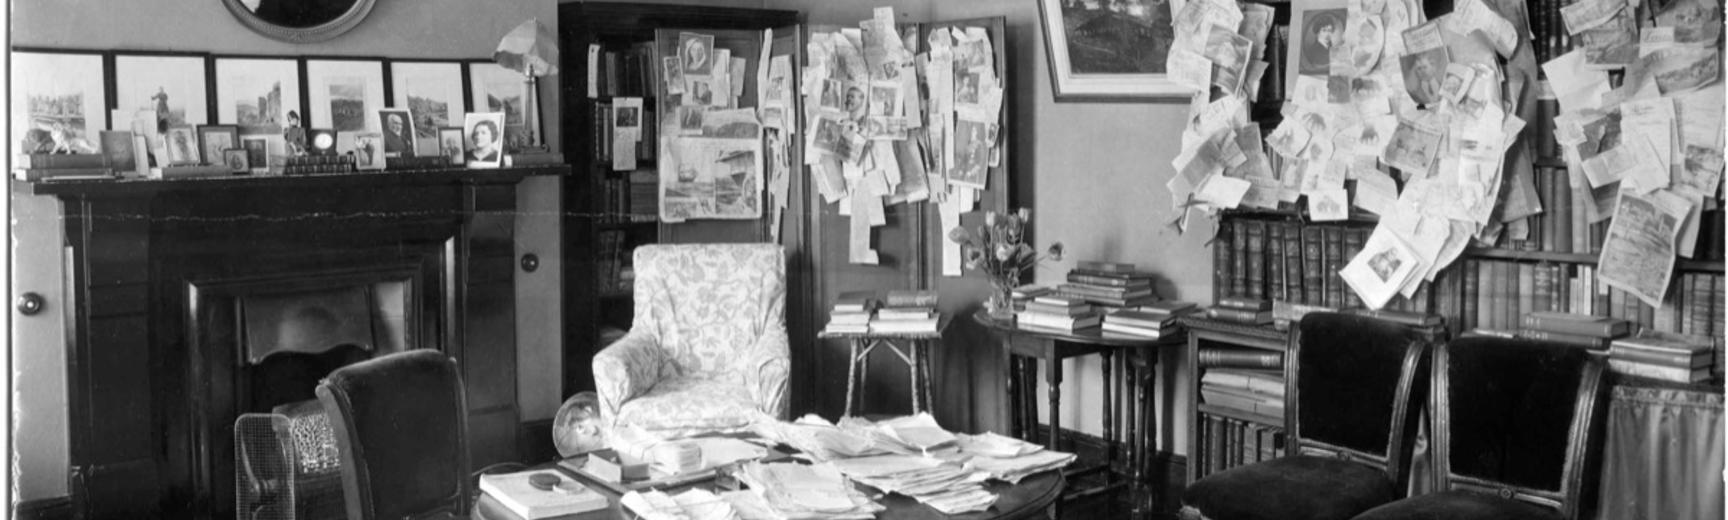 John Baddeley's study at 10 Keble Road, Oxford.  Photographer unknown. Oxford, England. Late 1930s.